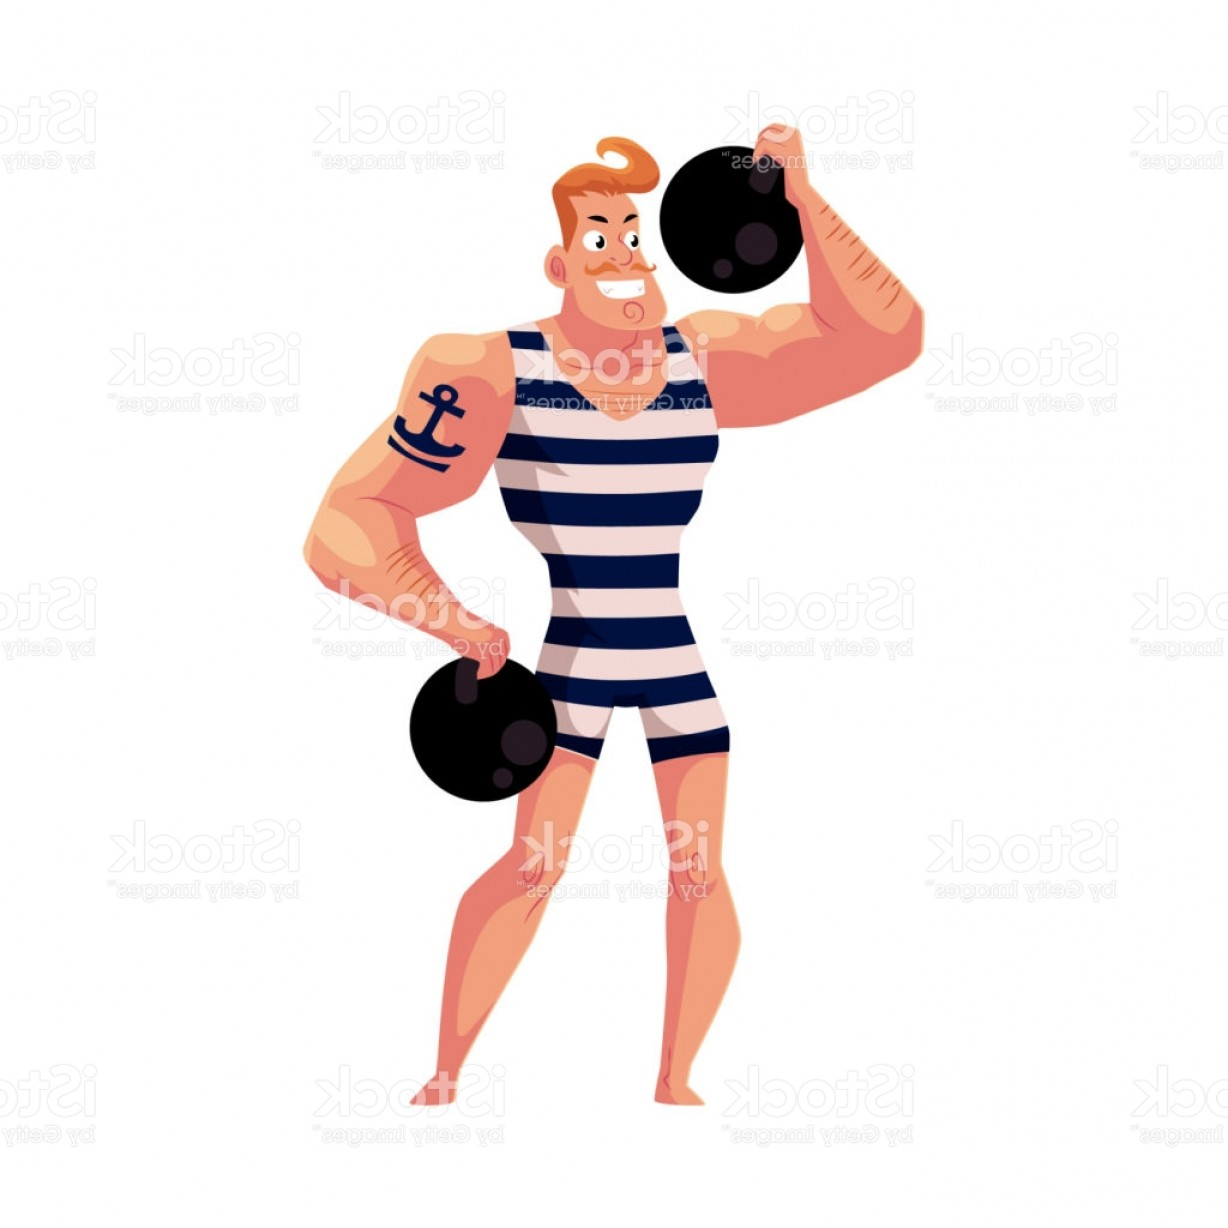 Weightlifter Vector Art: Strongman Strong Man Circus Performer Weightlifter With Cannon Balls Gm